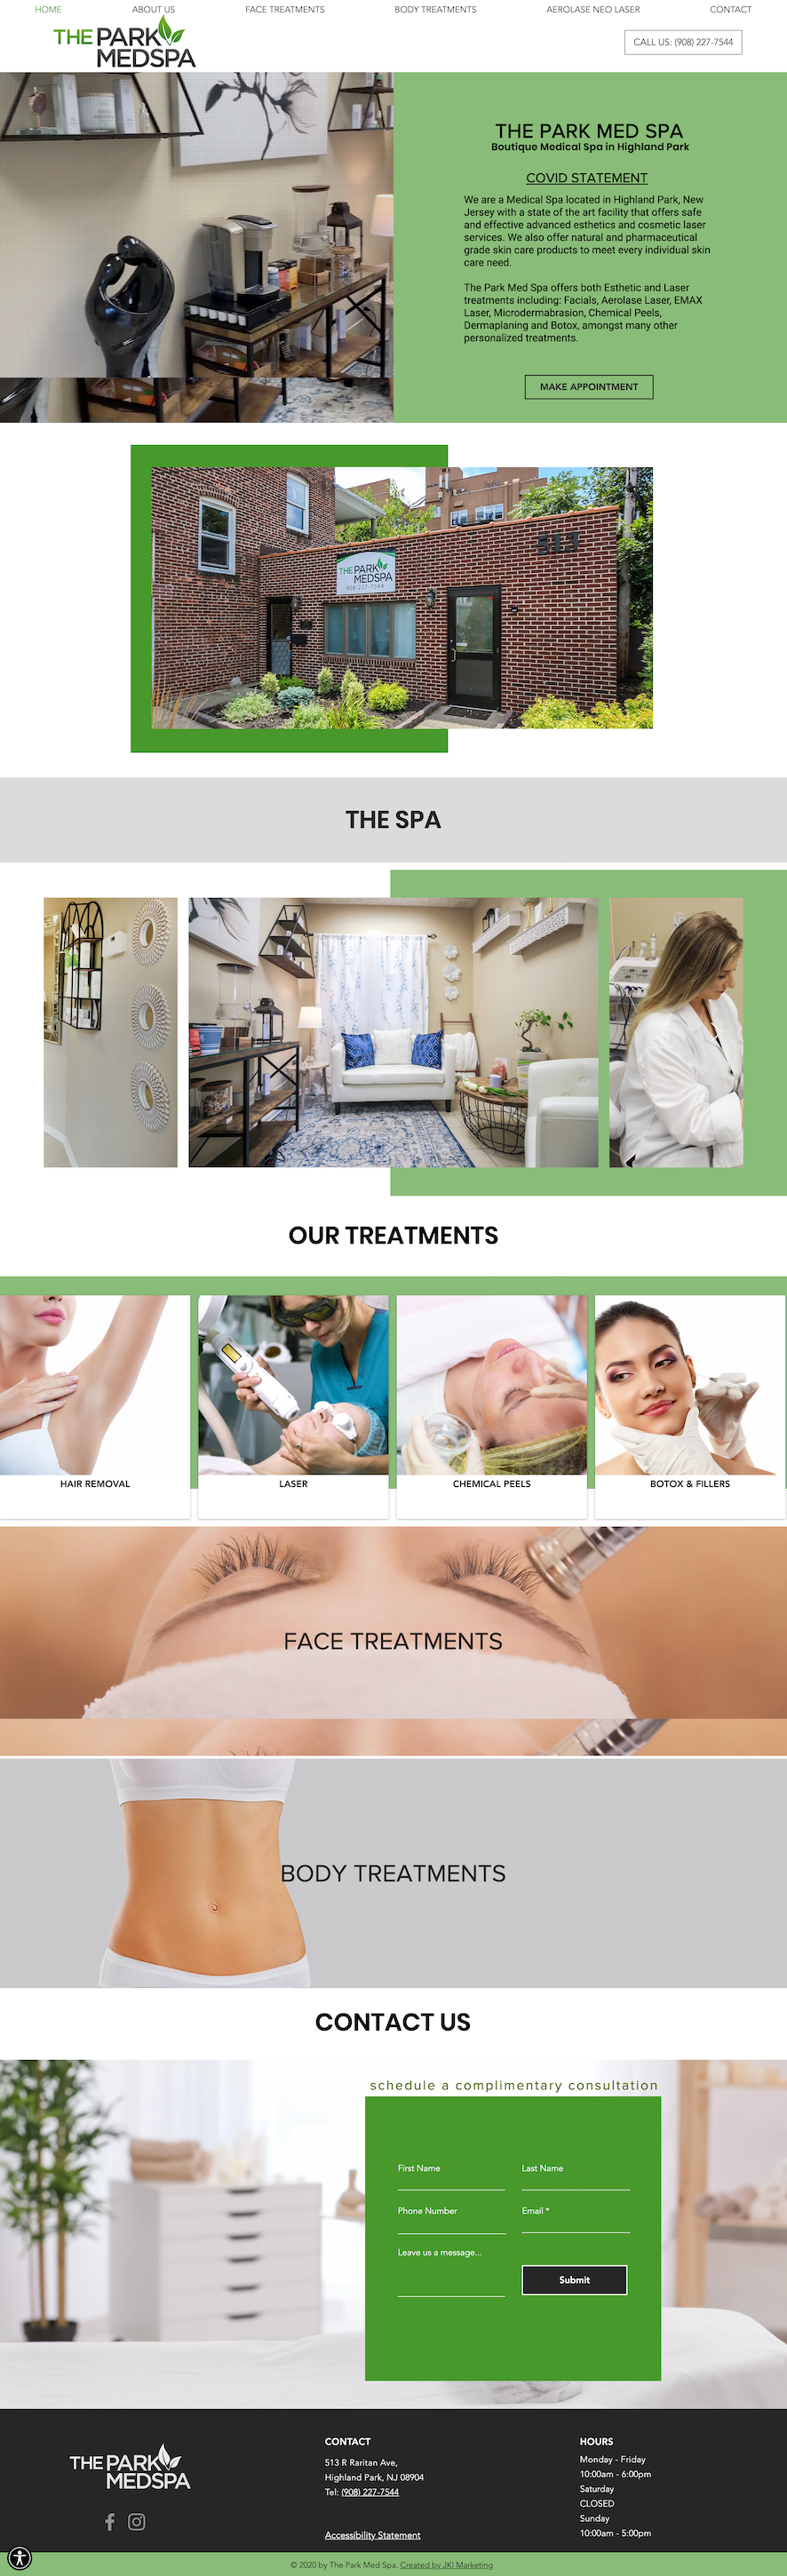 Website Design For Medical SPA